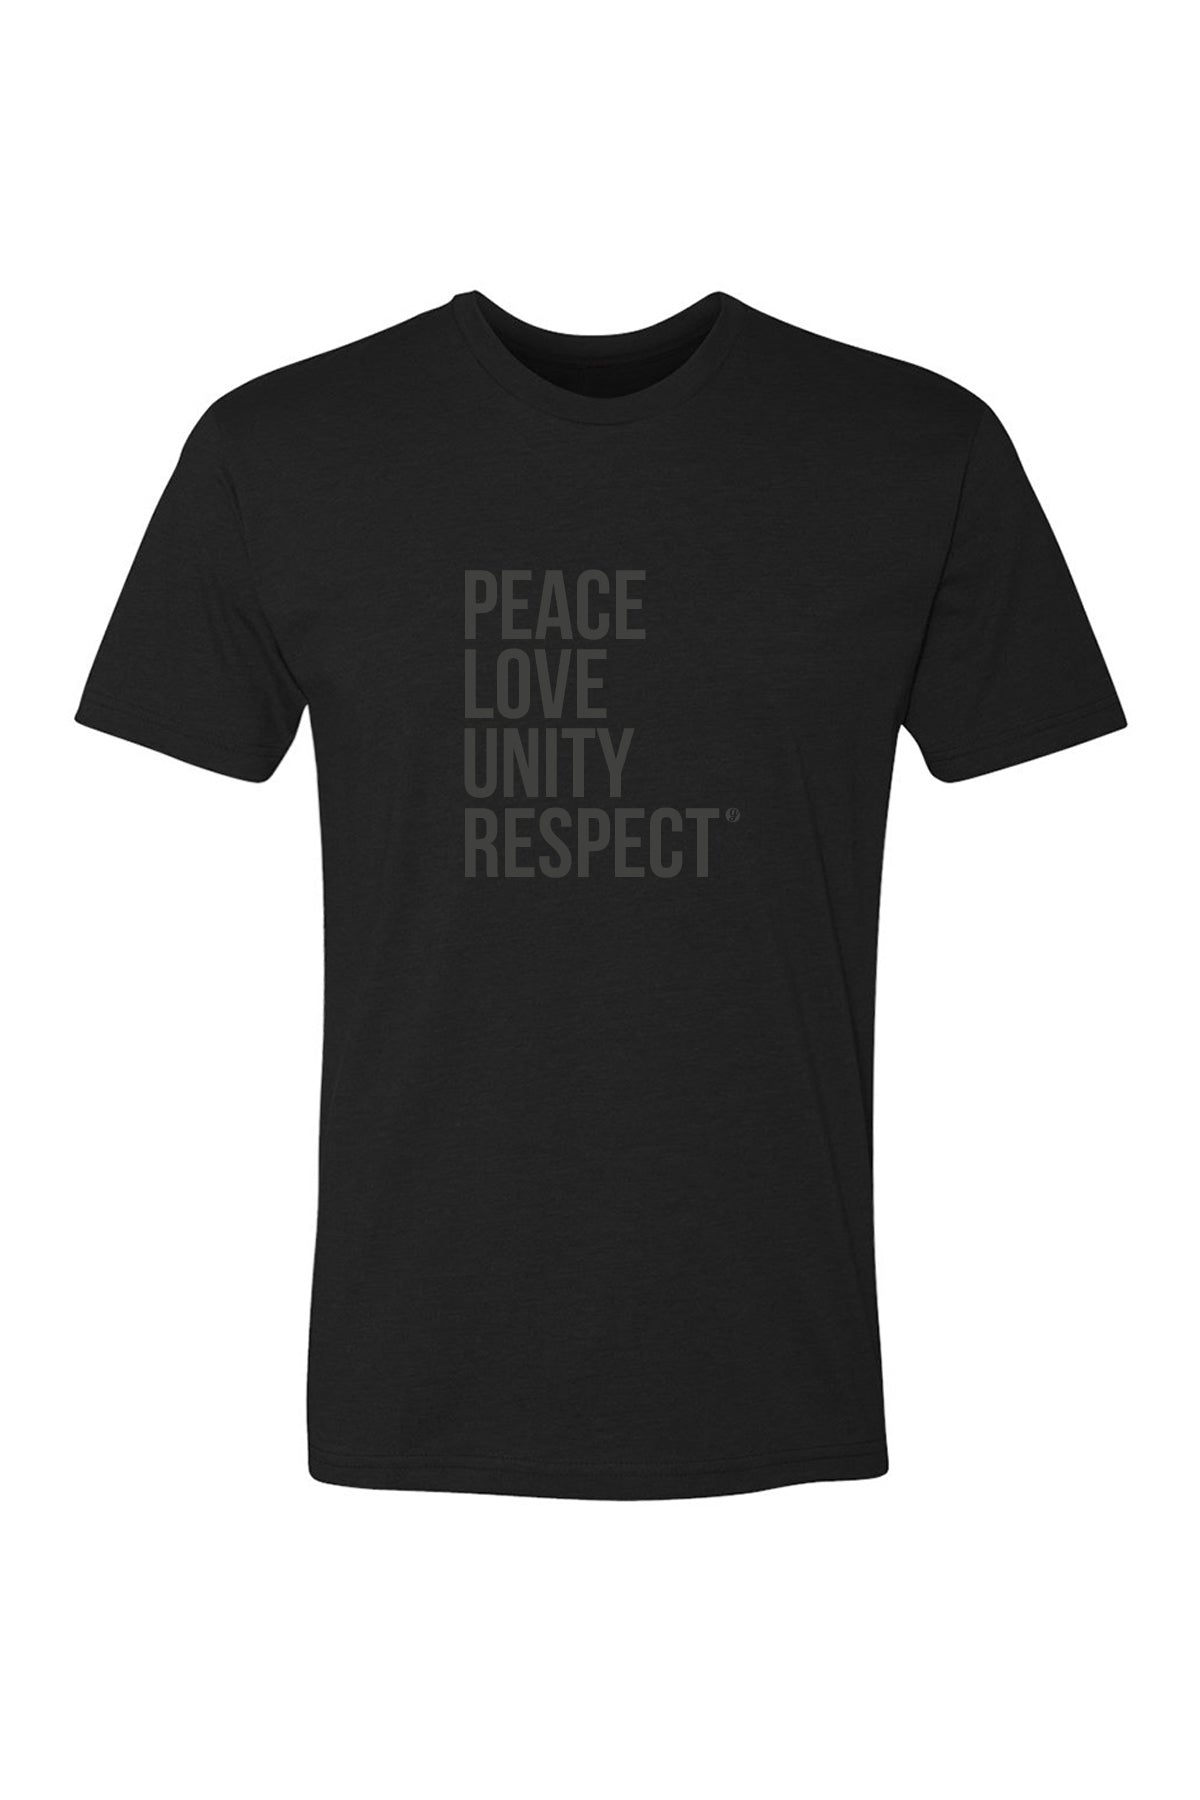 PEACE LOVE UNITY RESPECT T-SHIRT